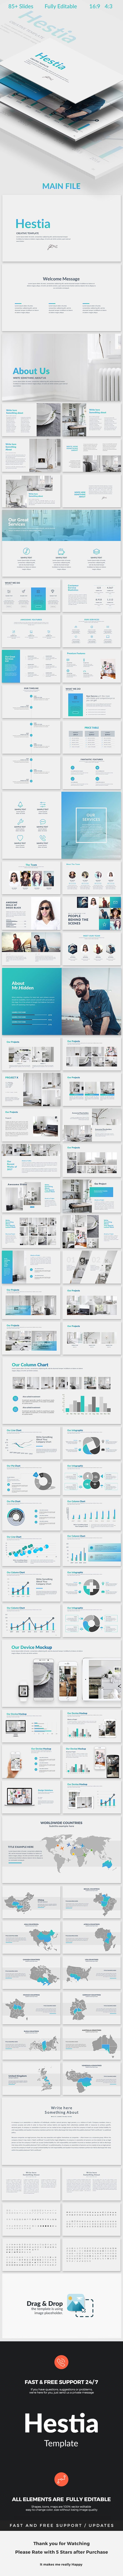 Hestia Creative Powerpoint Template